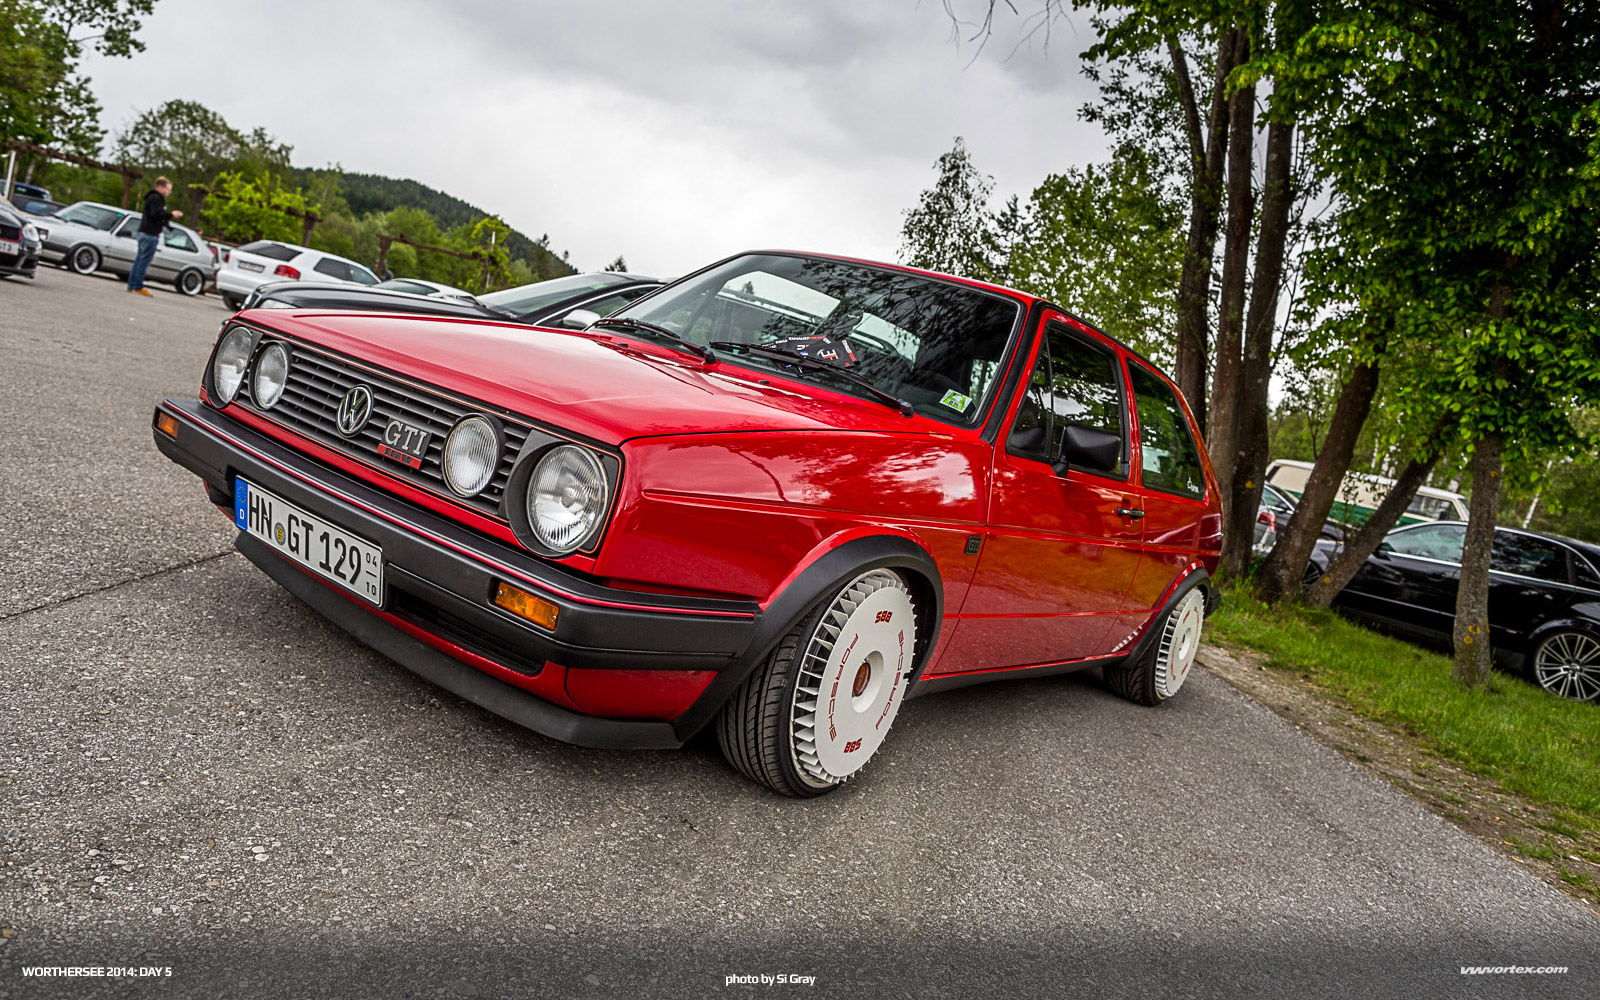 2014-Worthersee-Day-5-Si-Gray-Audi-384